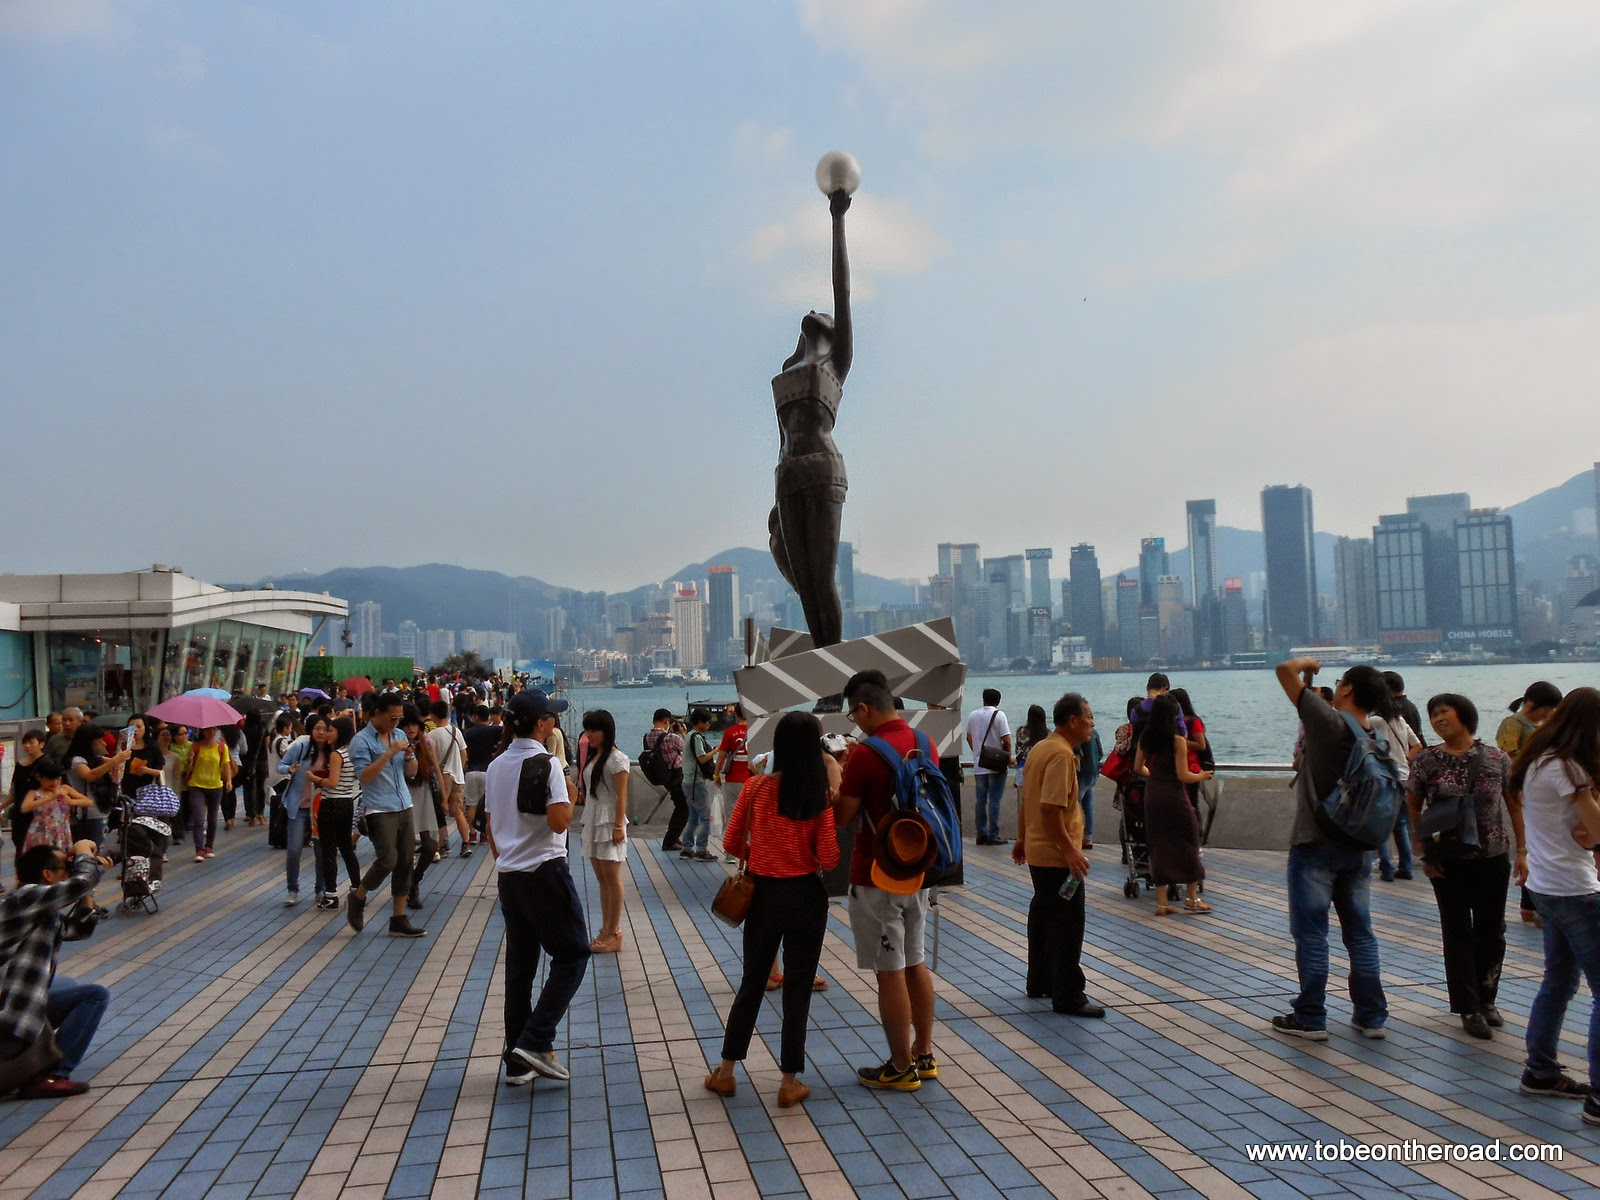 Hongkong,Avenue of stars,Avenue of Stars, Harbour, Hongkong, Instruments, Kowloon, Singer, Symphony of Lights,